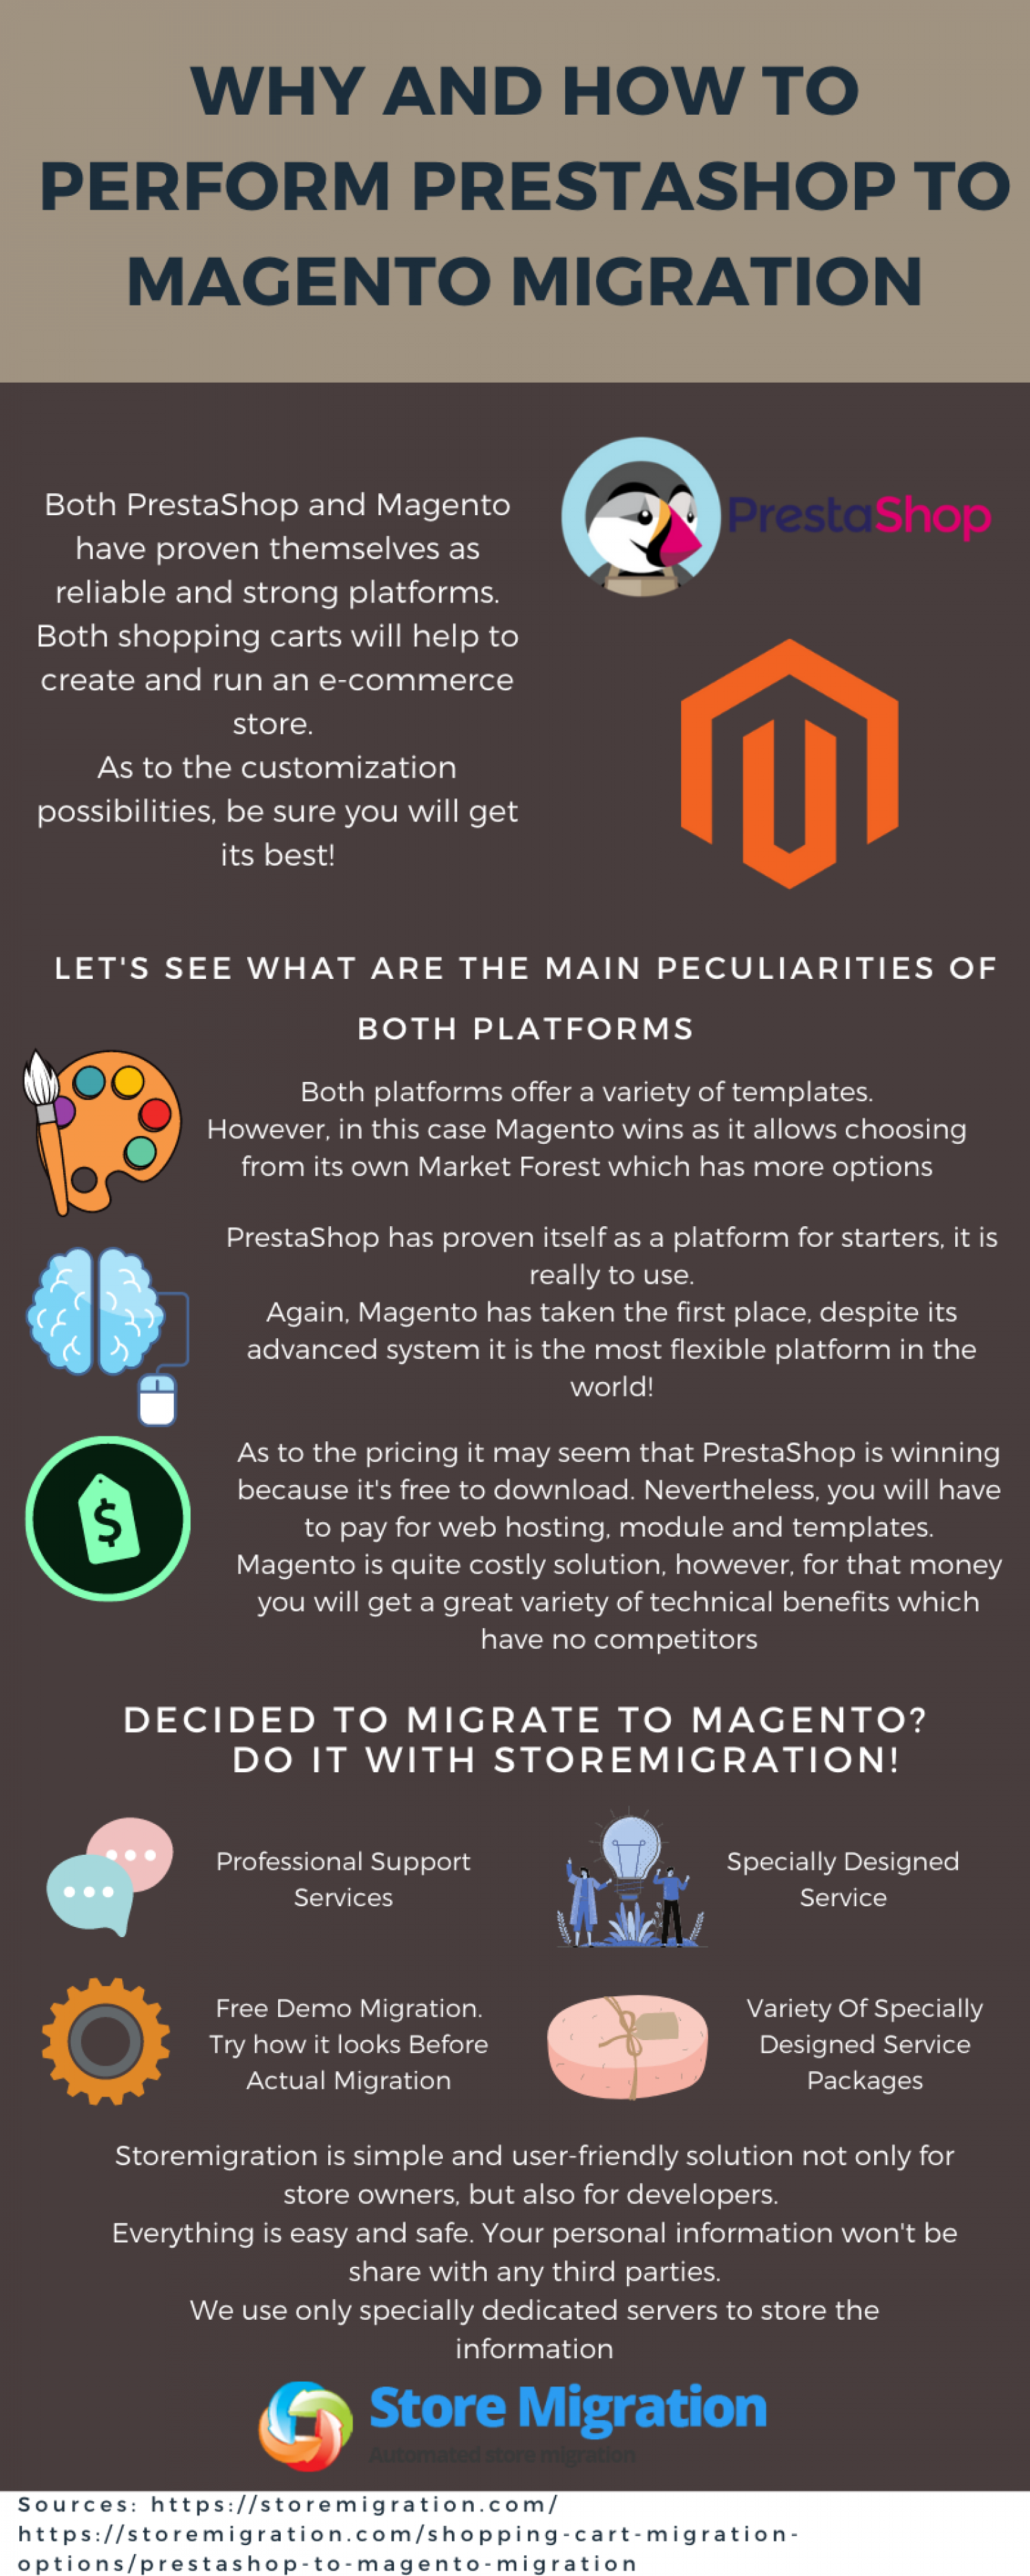 Why And How To Perform PrestaShop To Magento Migration Infographic